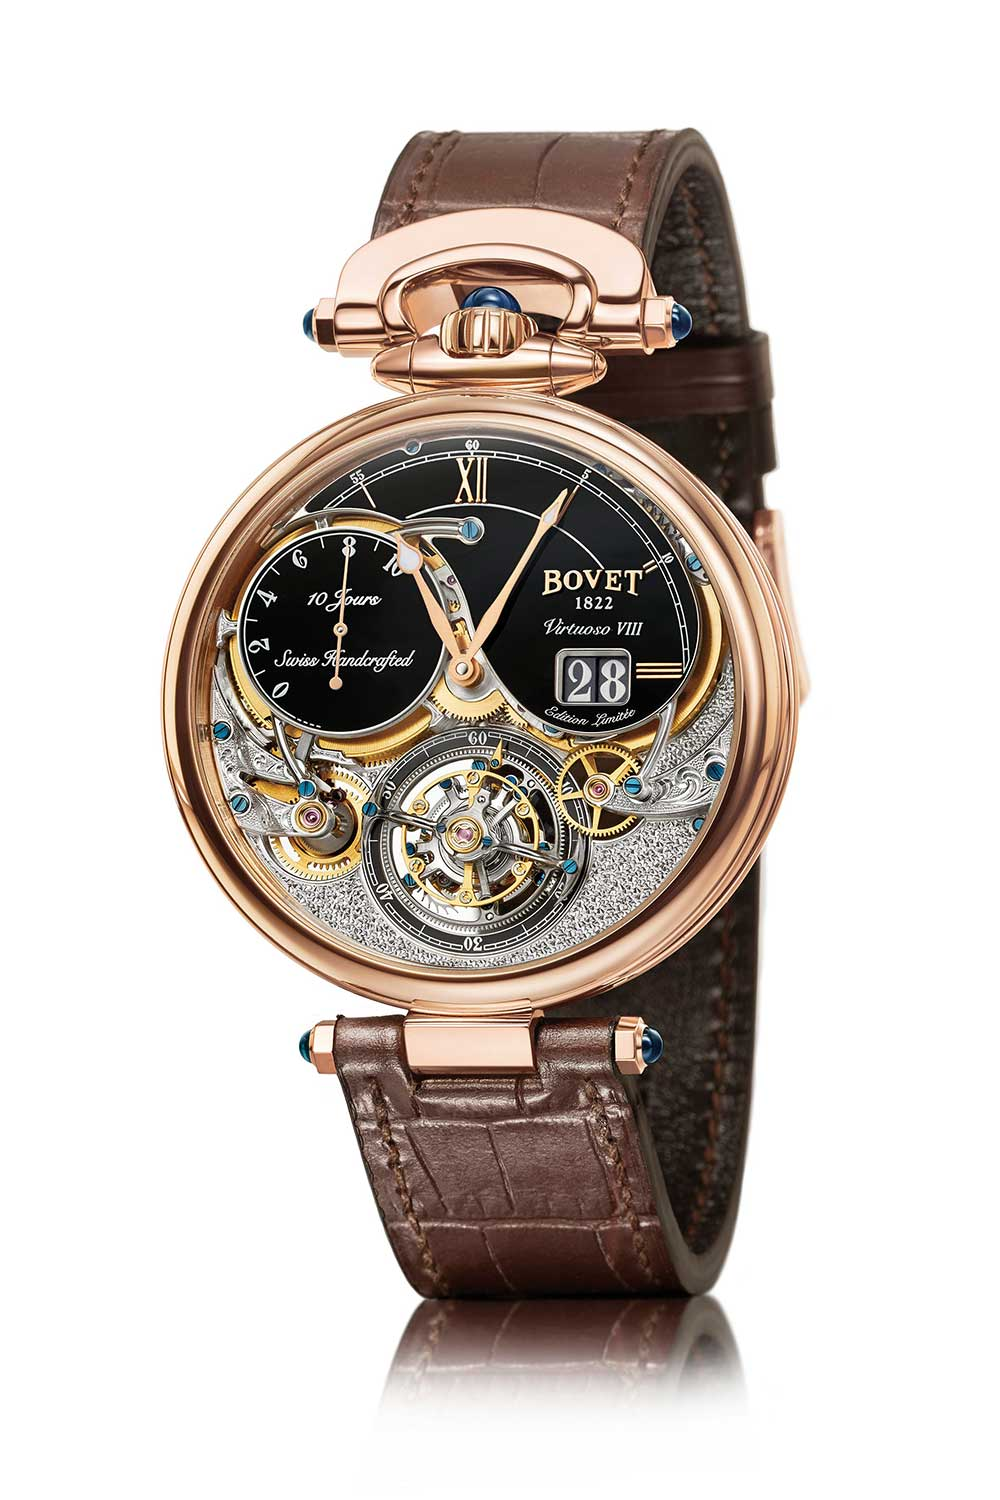 Bovet Virtuoso VIII Flying Tourbillon Big Date, red gold, black dial